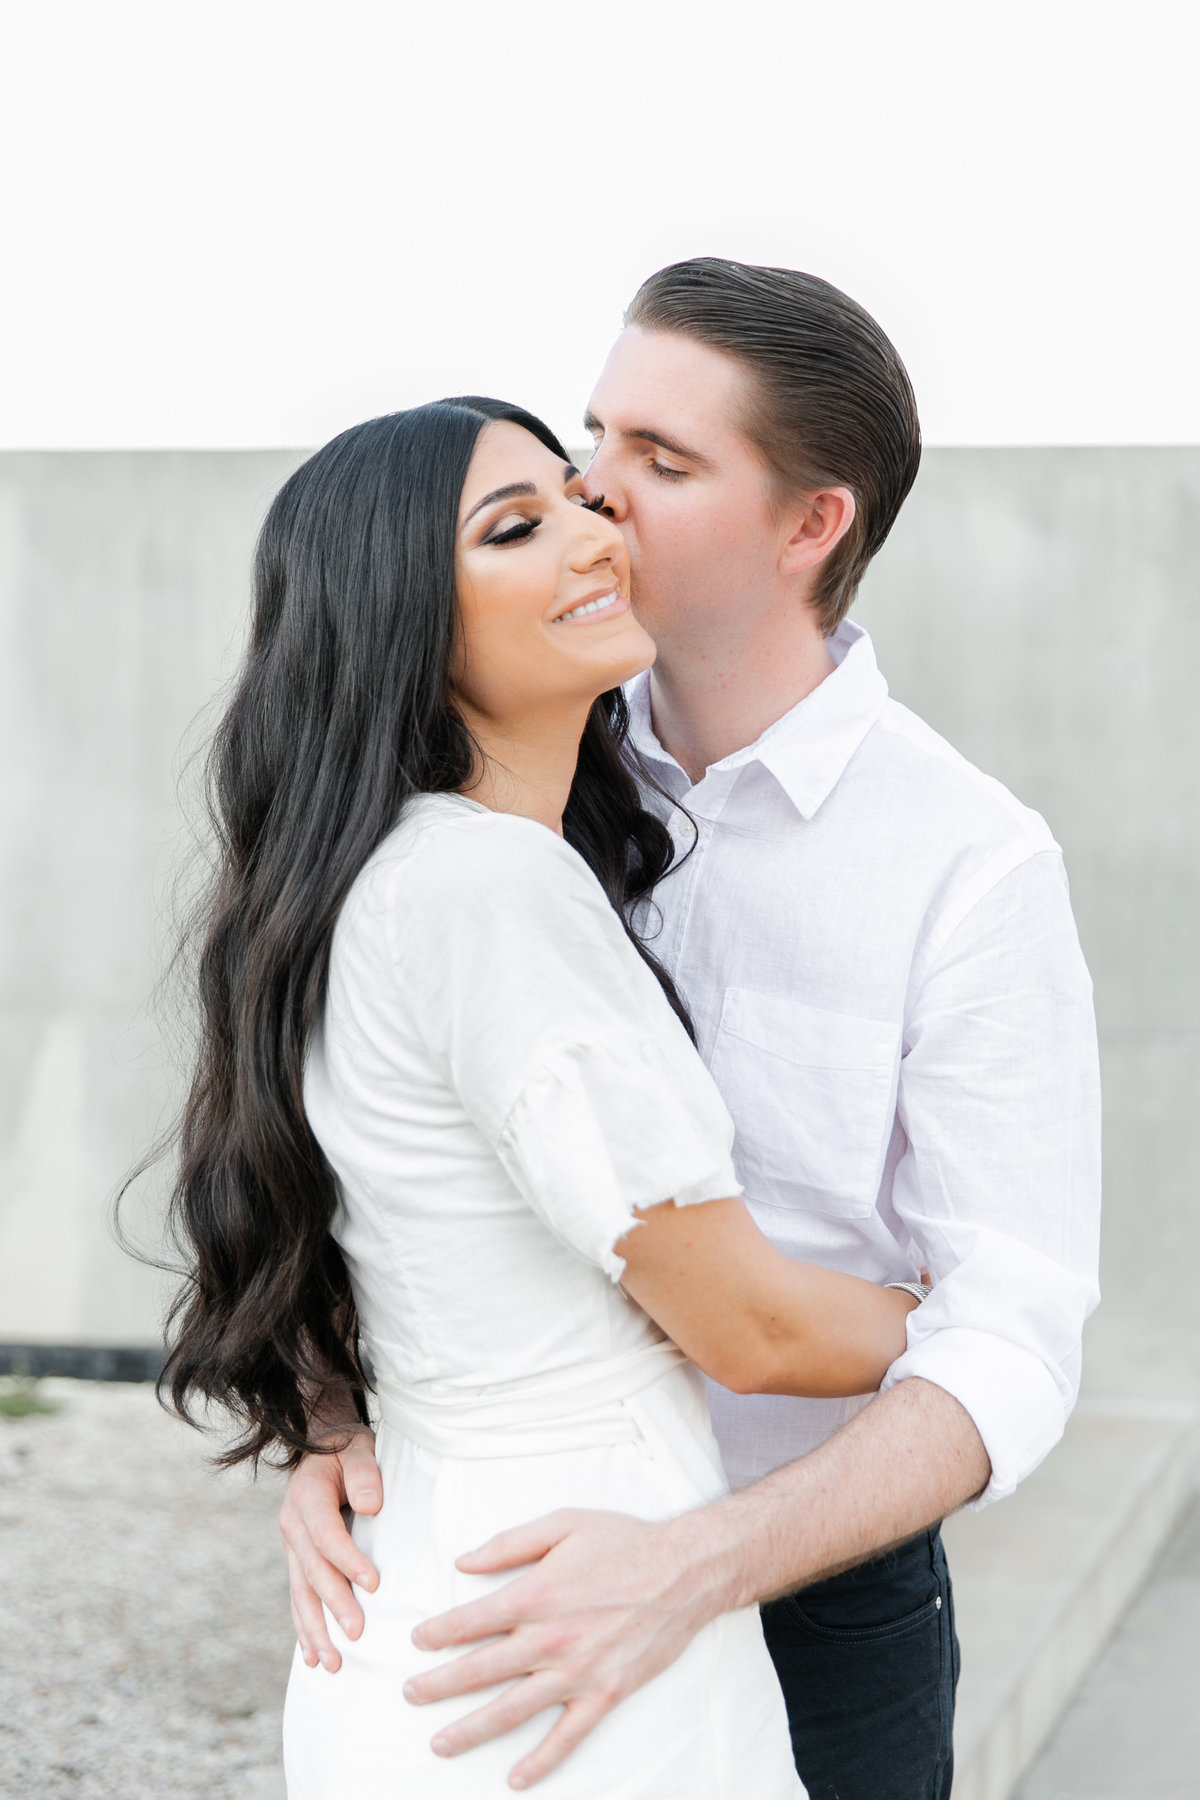 Karlie Colleen Photography - Arizona Engagement City Shoot - Kim & Tim-40